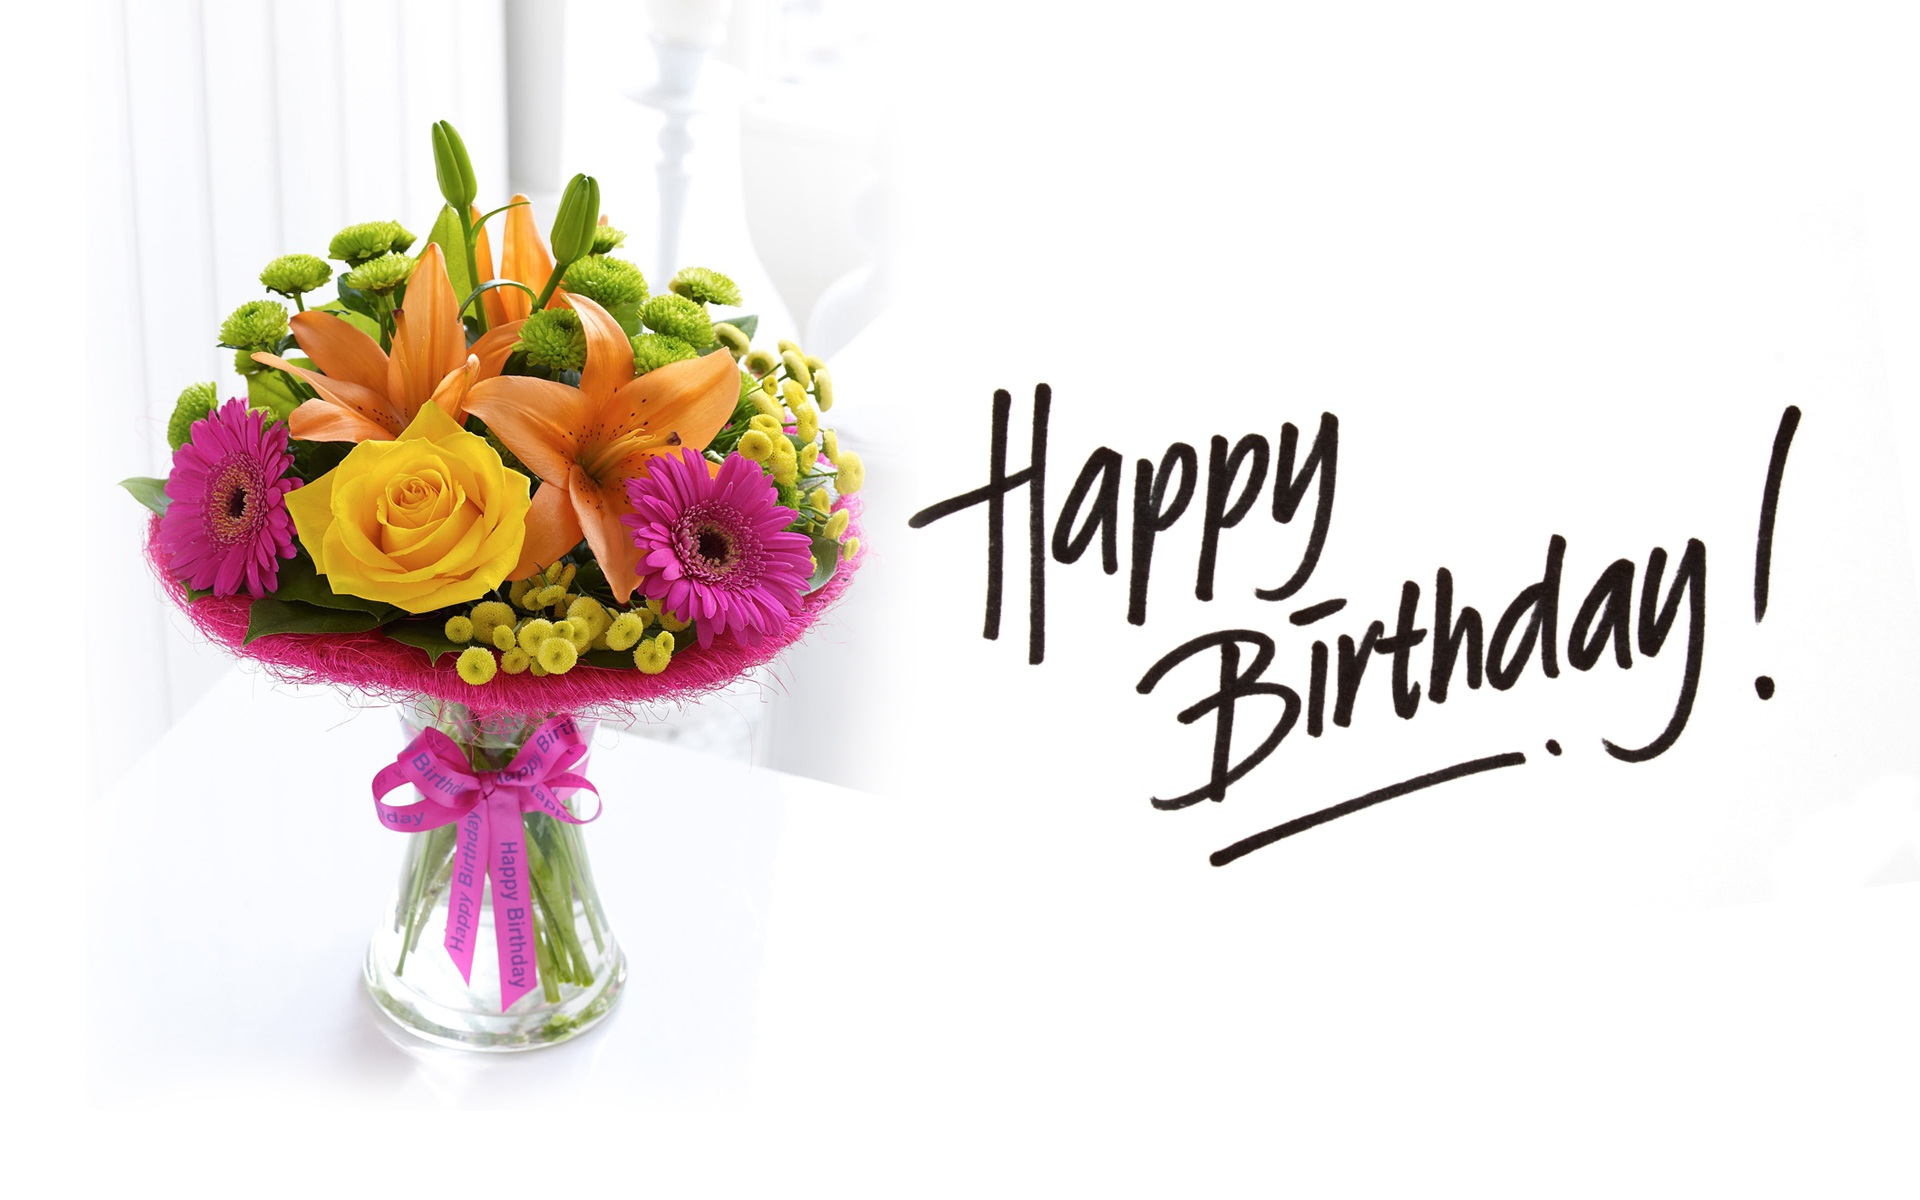 happy birthday best wishes images ; Happy-Birthday-best-wishes-bouquet-for-you